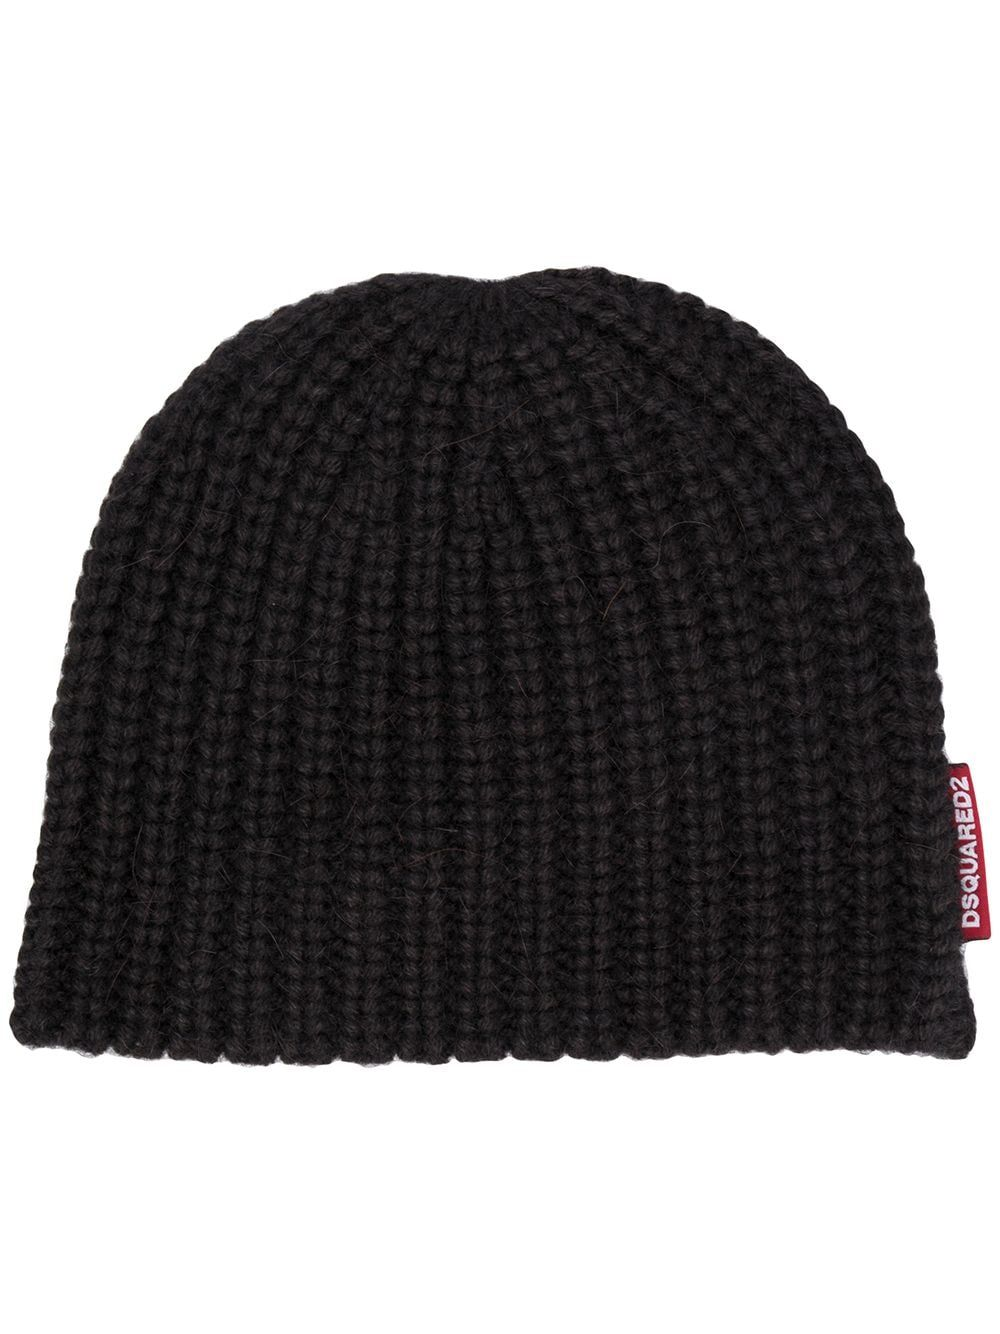 Dsquared2 DSQUARED2 WOMEN'S BLACK WOOL HAT